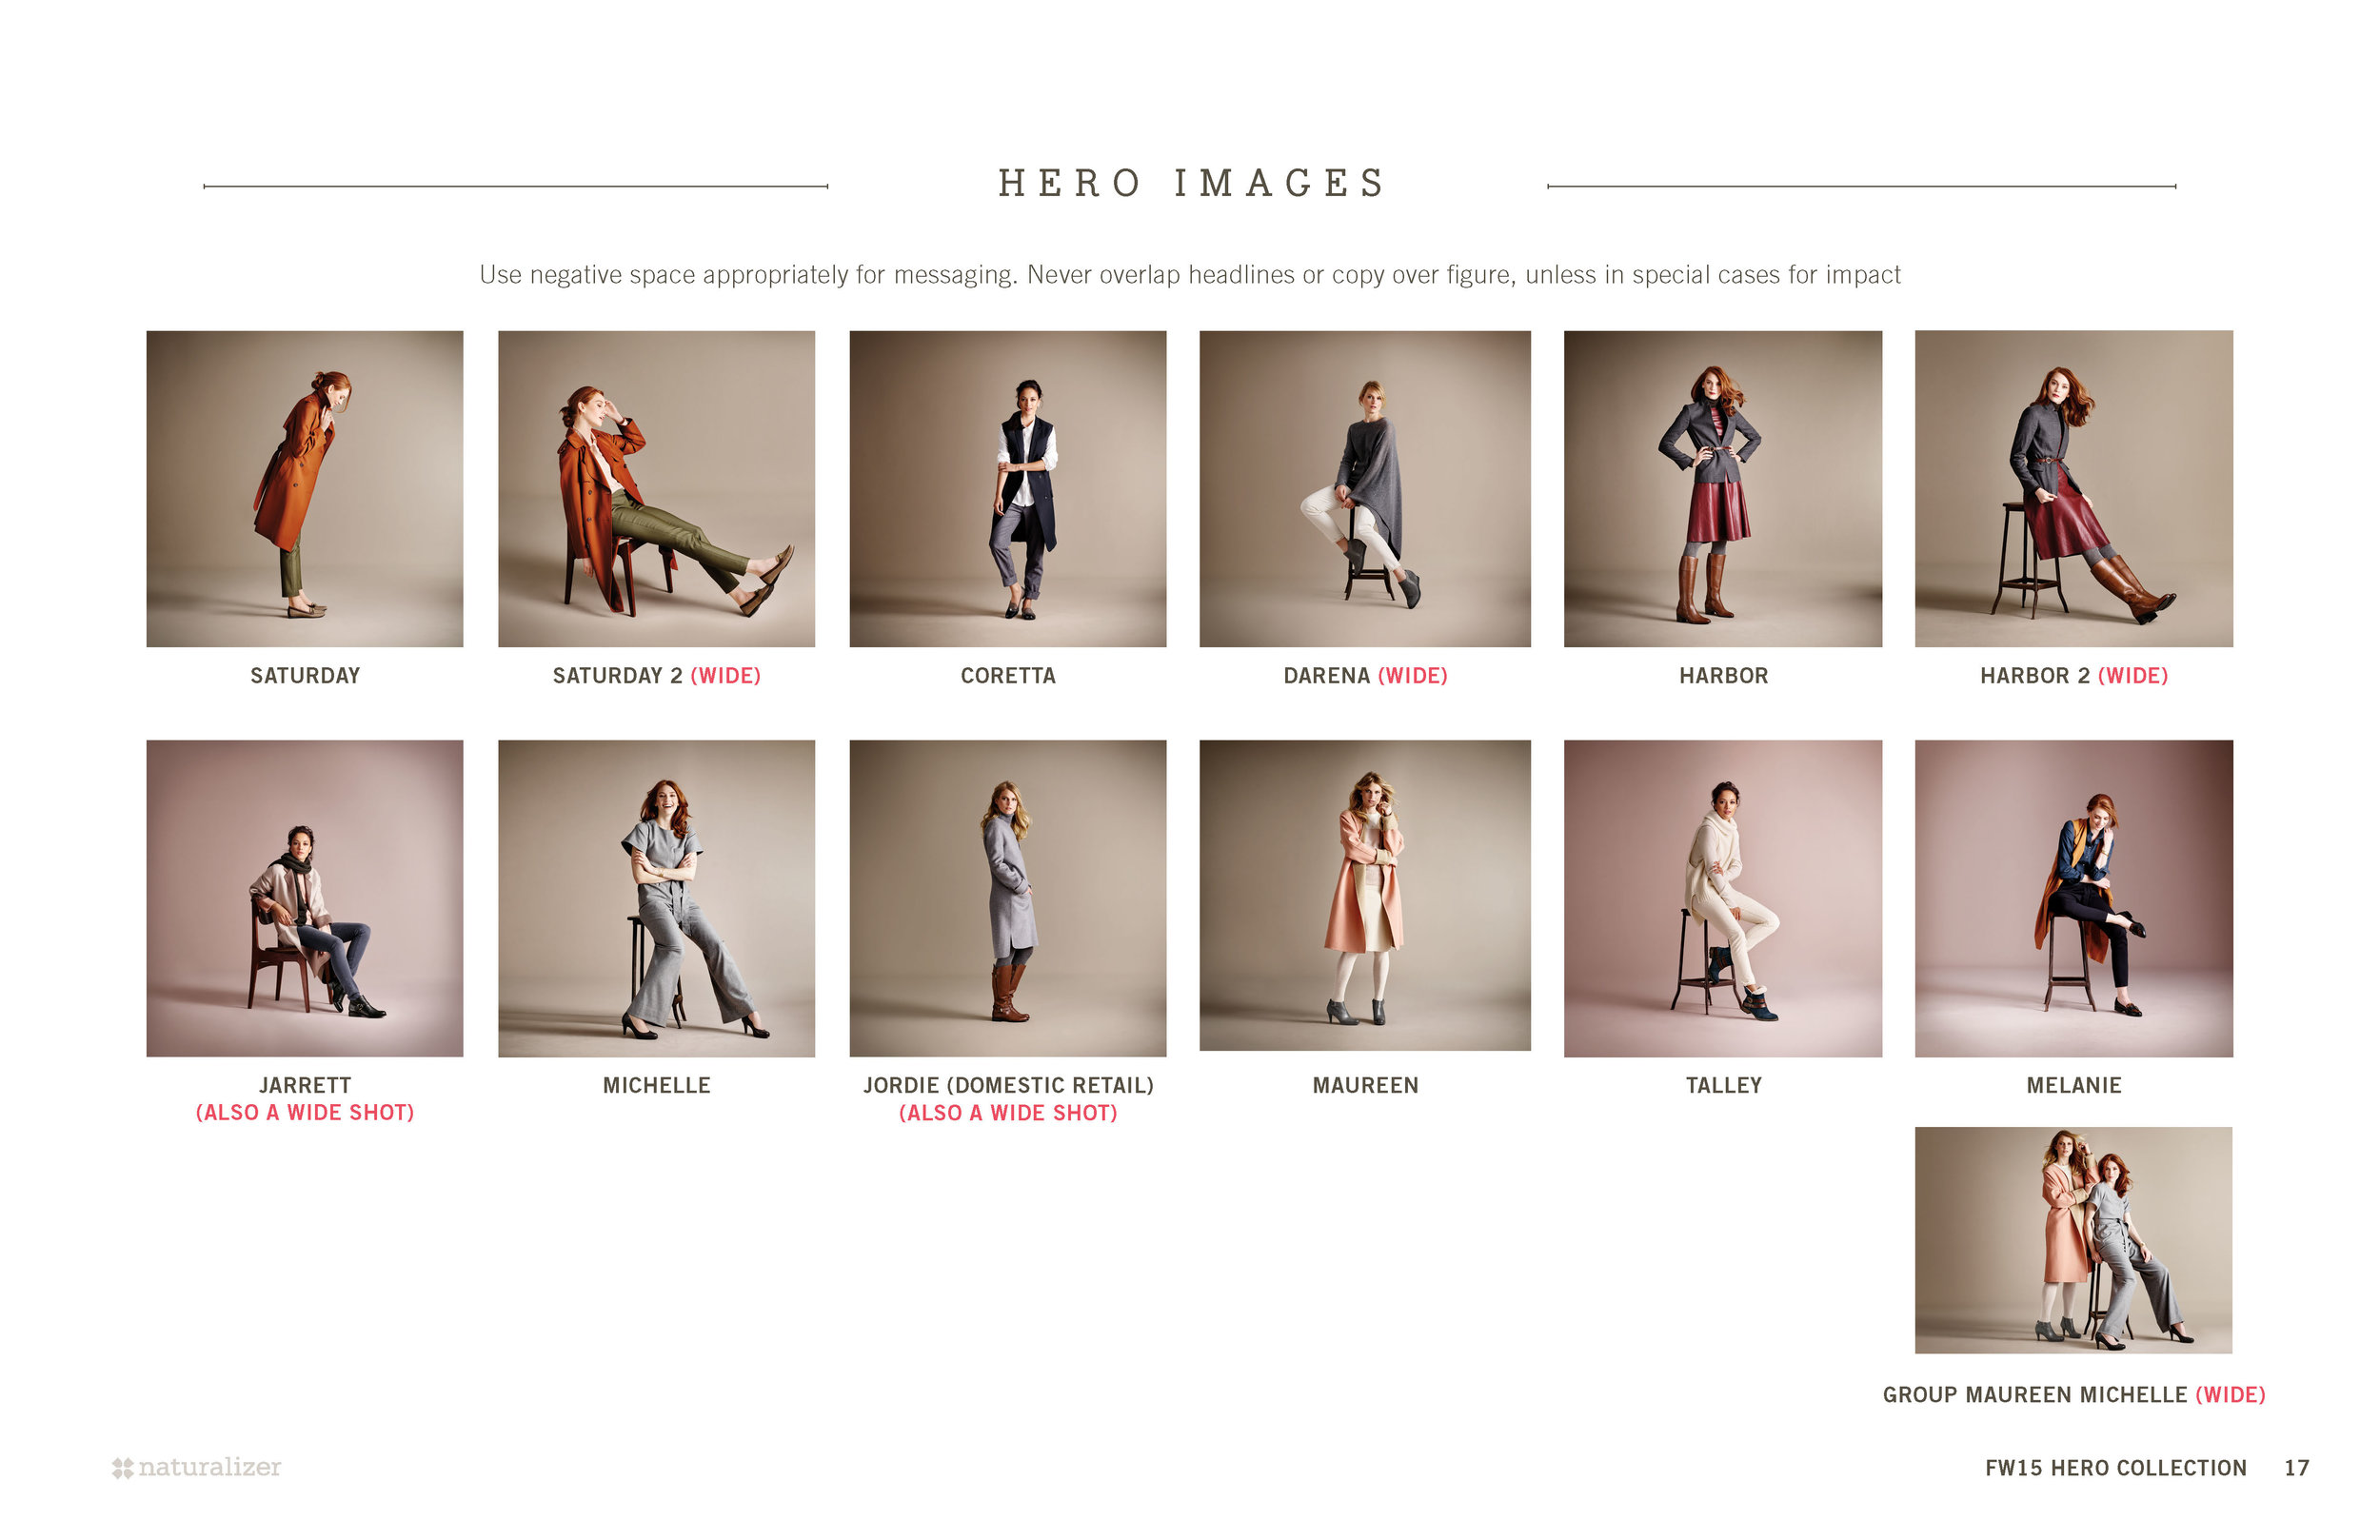 NATFW15 STYLE GUIDE CURRENT_Page_18.jpg